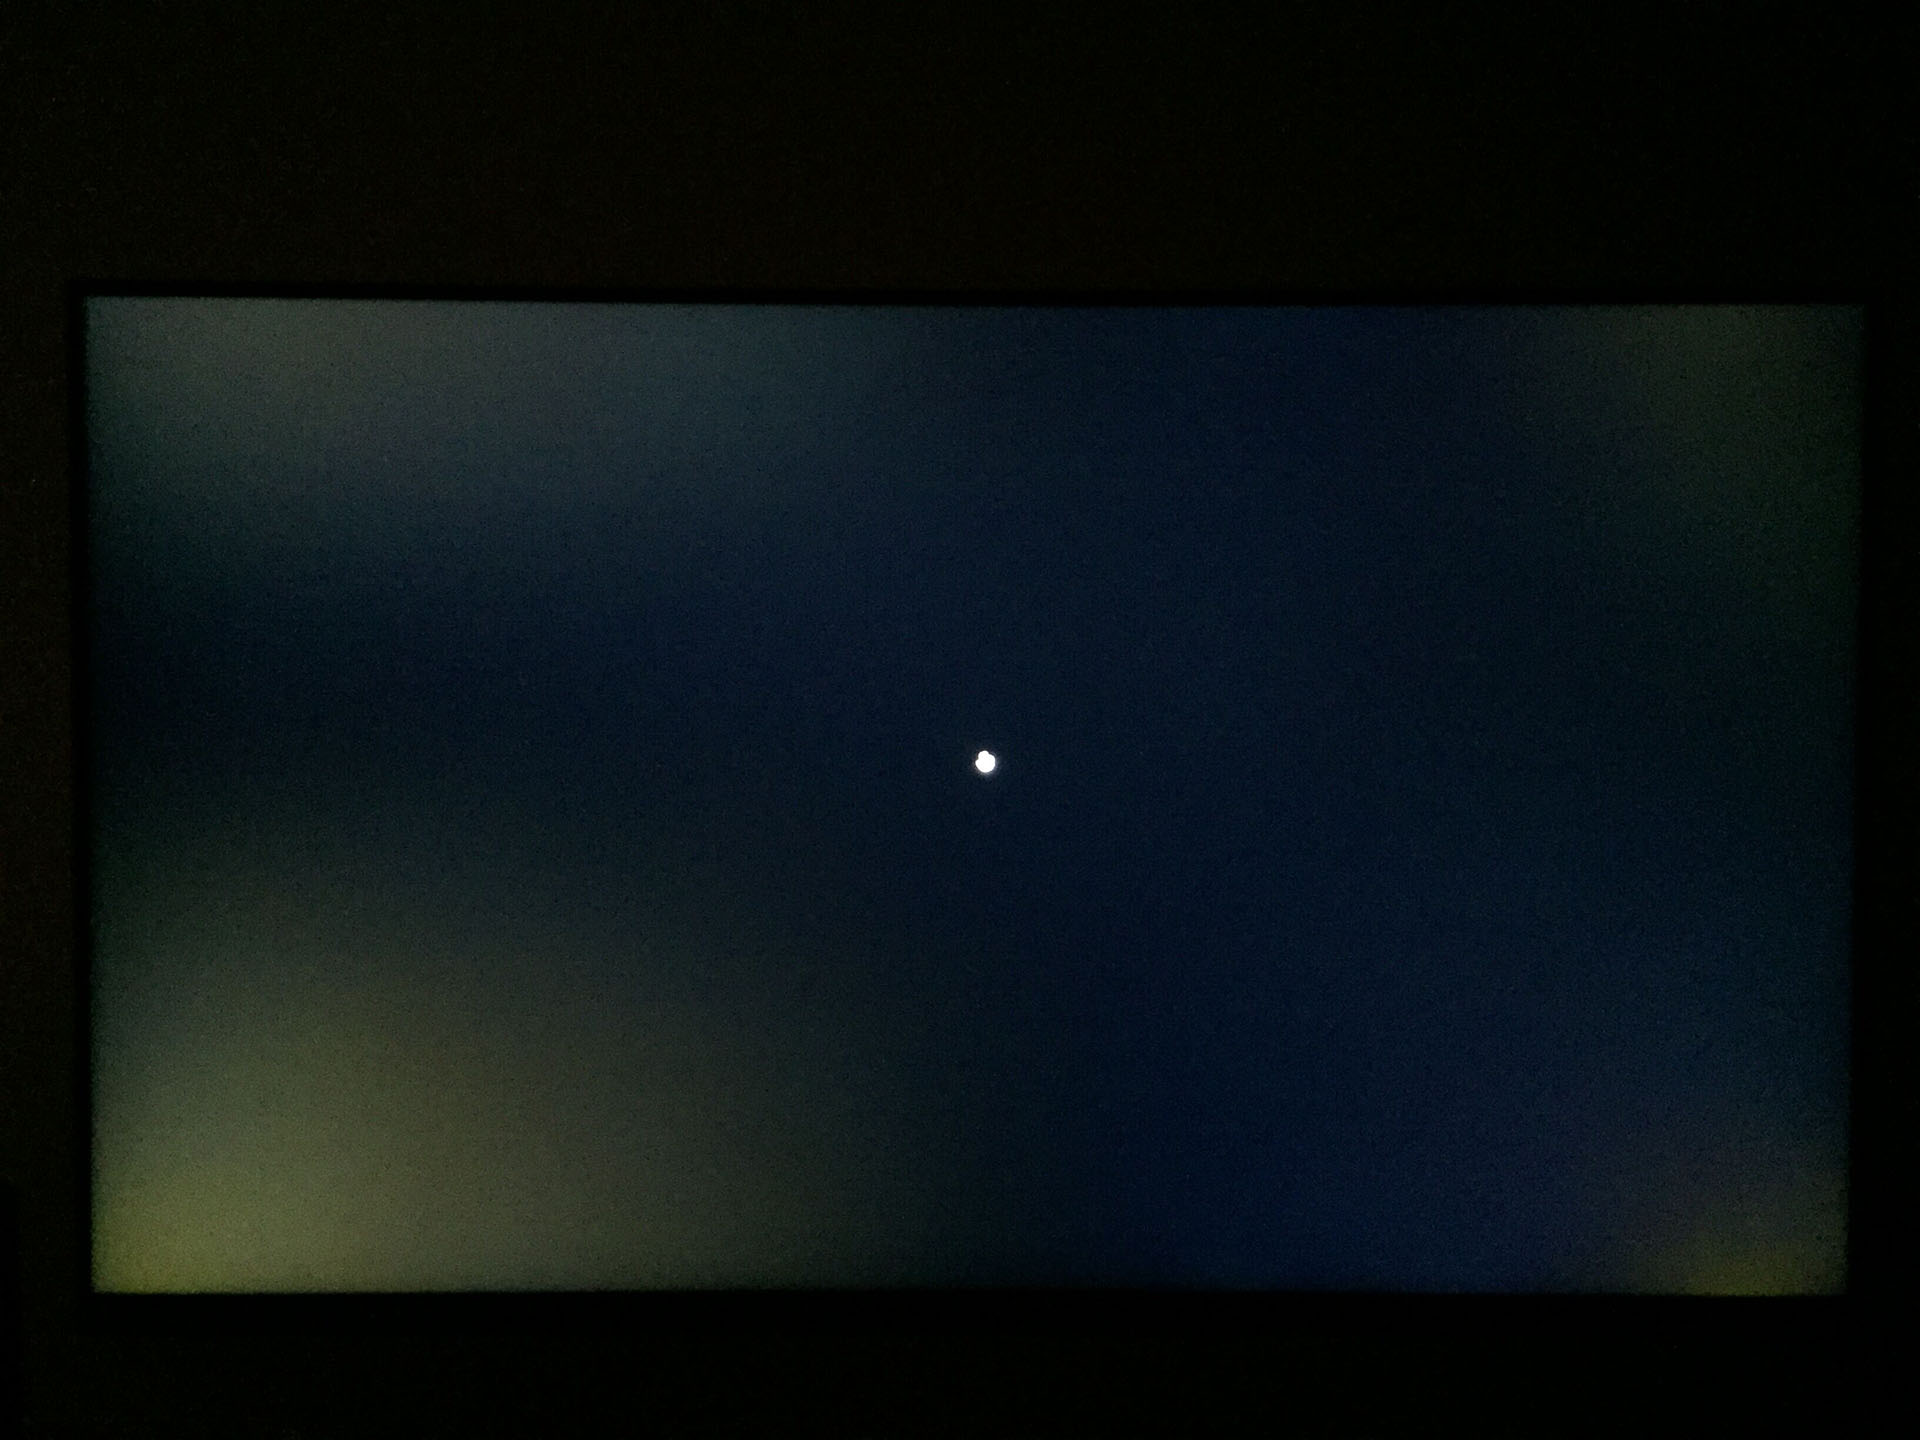 Backlight glow or bleed of lcd IPS monitor